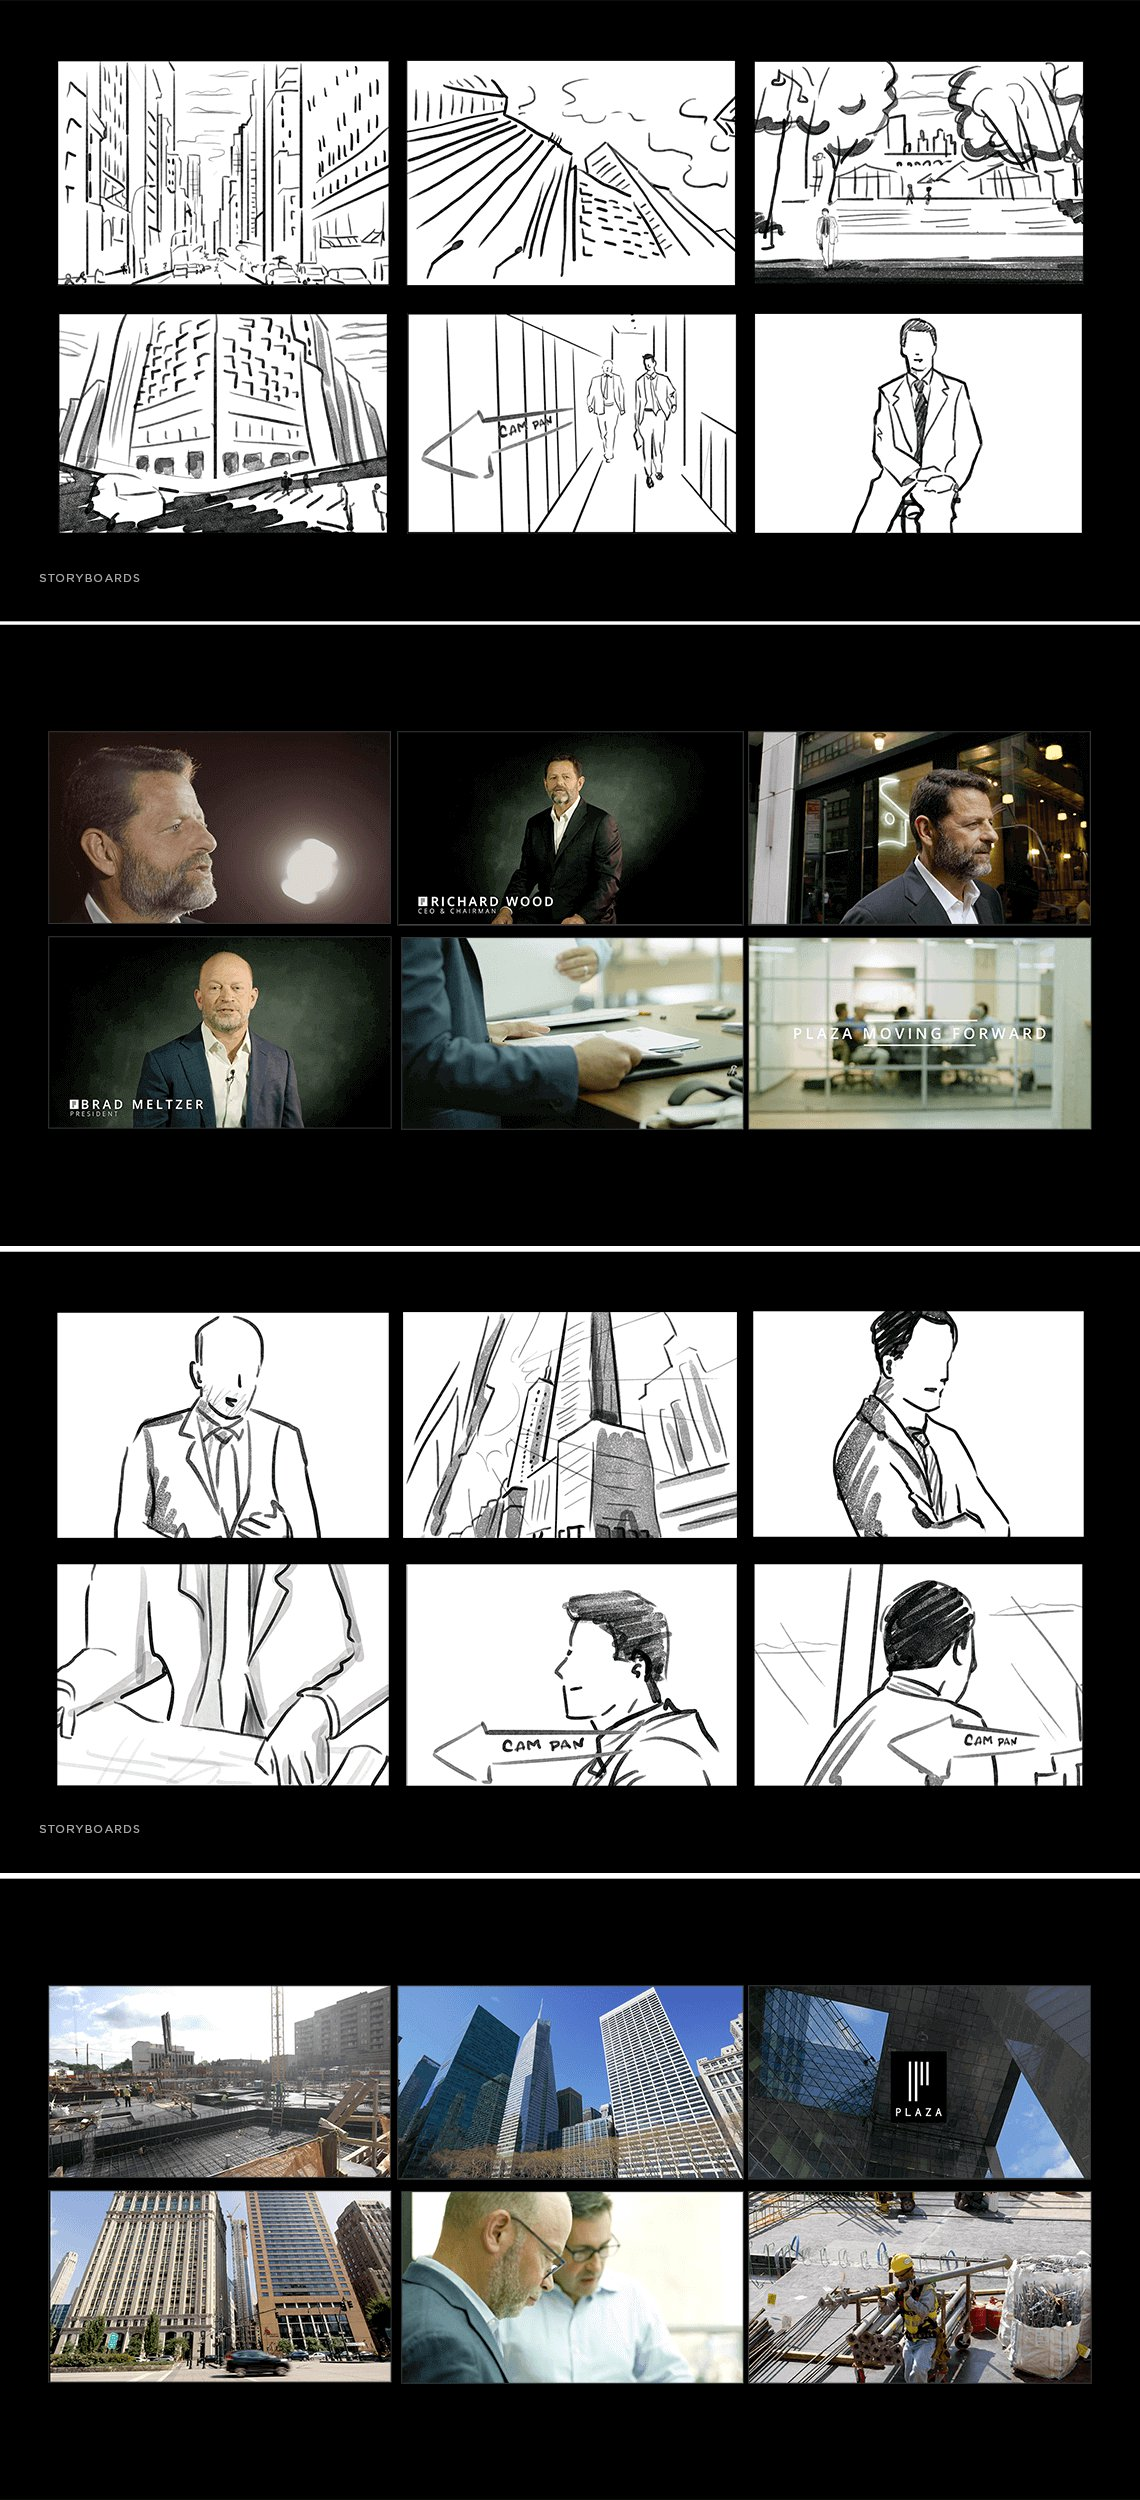 Jacober Creative Brand Identity for Plaza Construction - Photo of storyboard sketches compared to final video shot